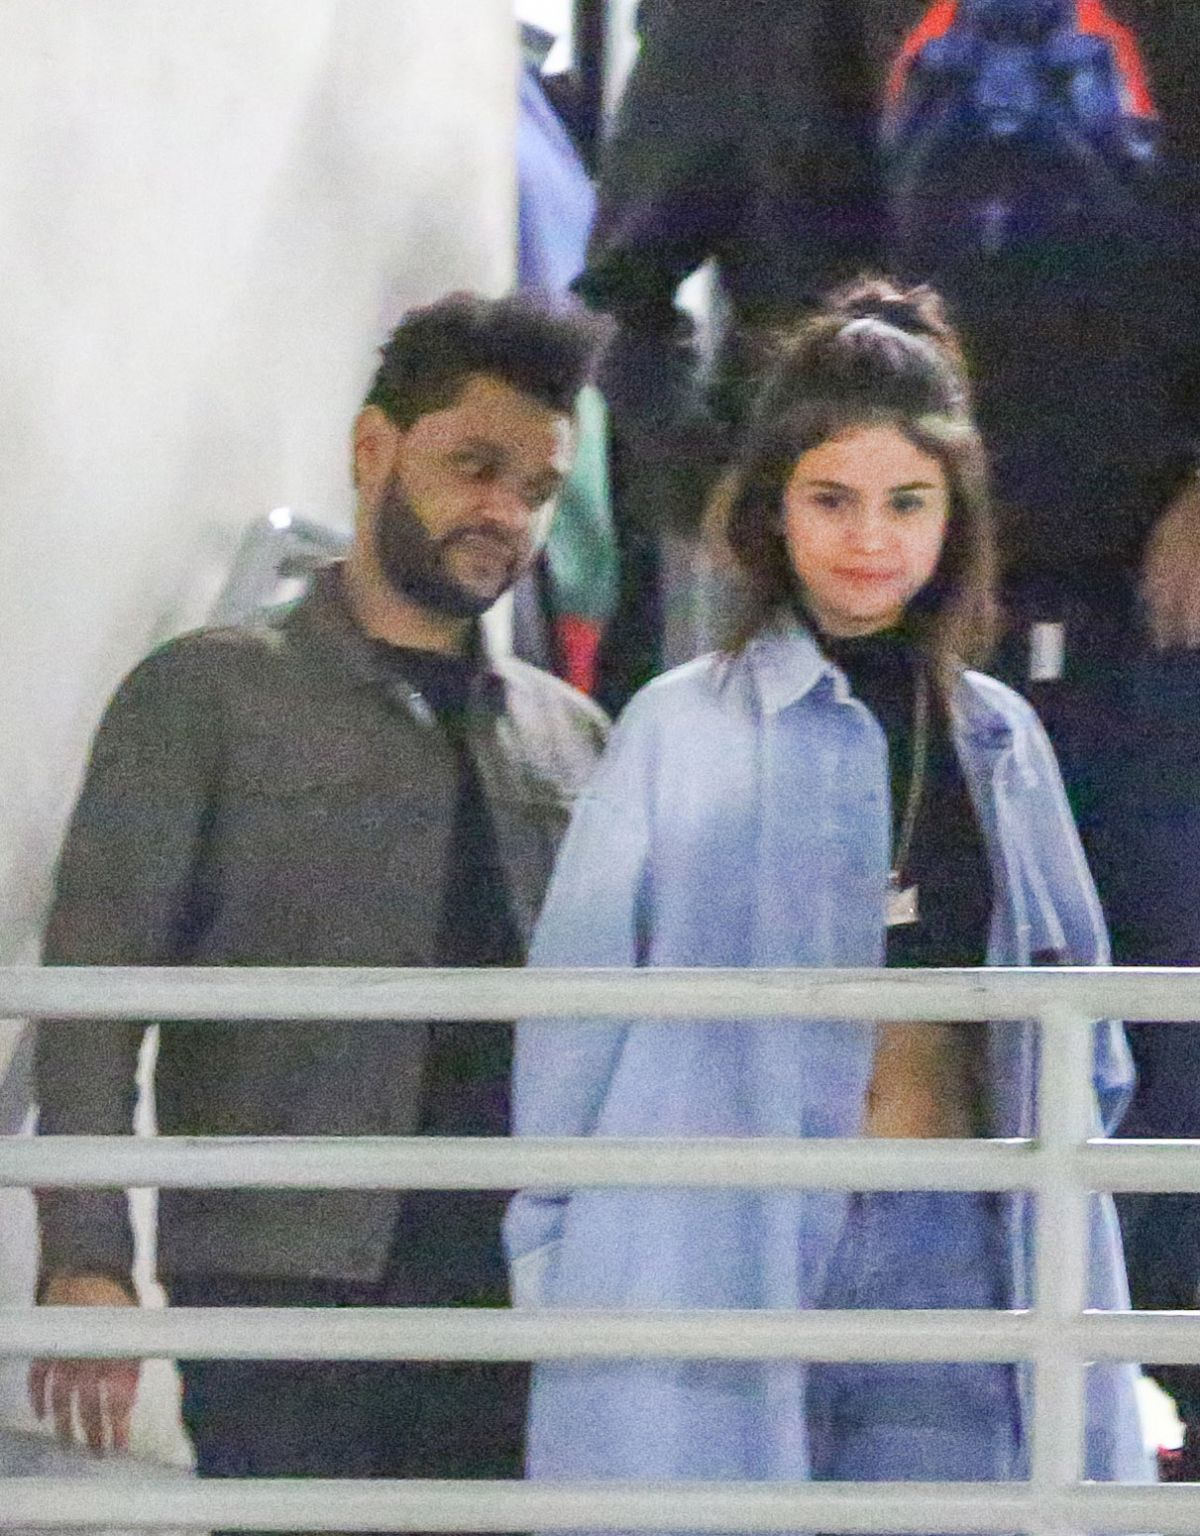 SELENA GOMEZ and The Weeknd Night Out in Hollywood 01/26/2017